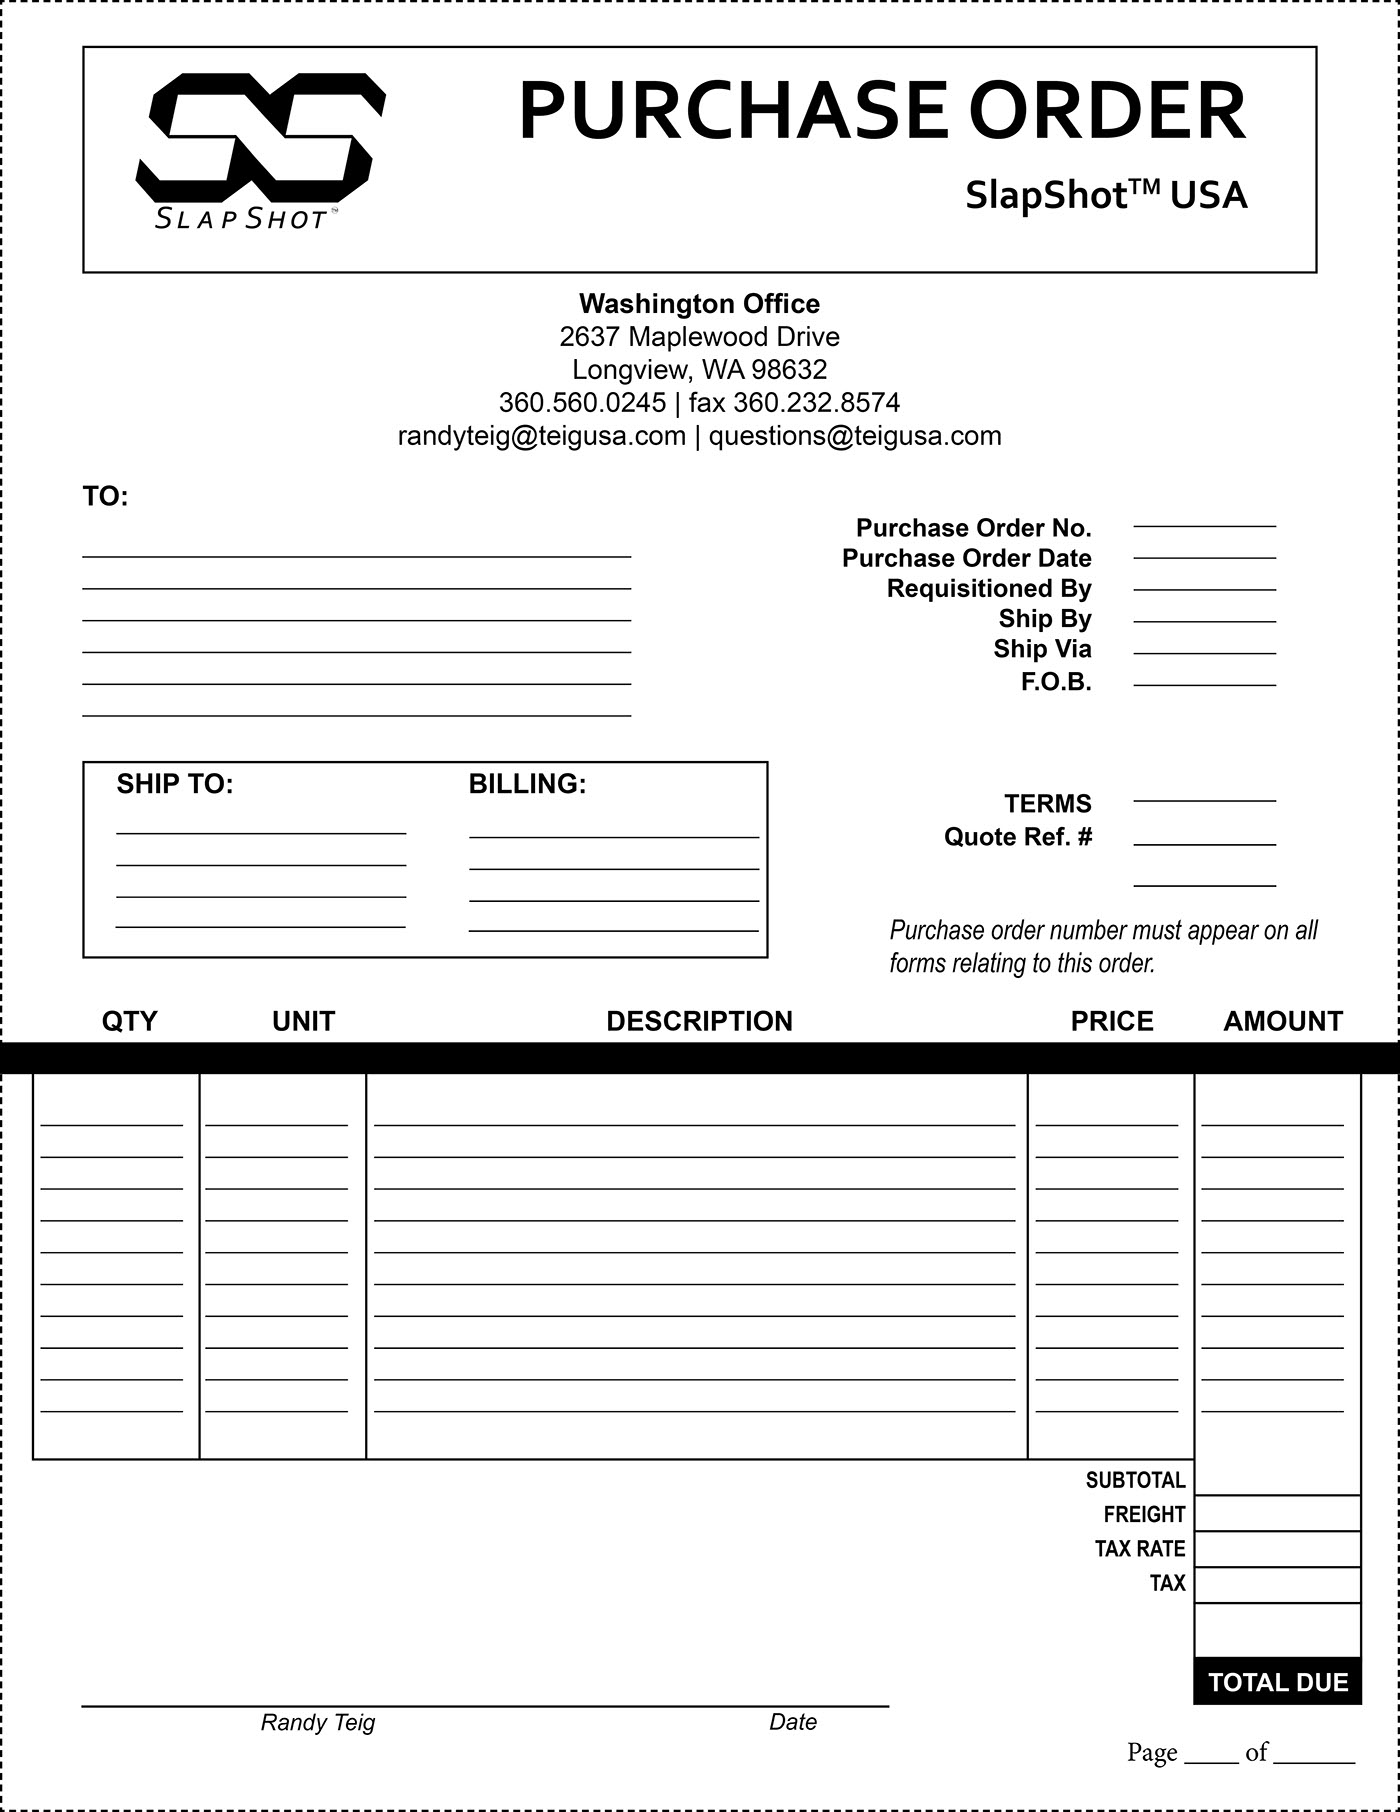 edit a purchase order template Purchase Order Template on Behance